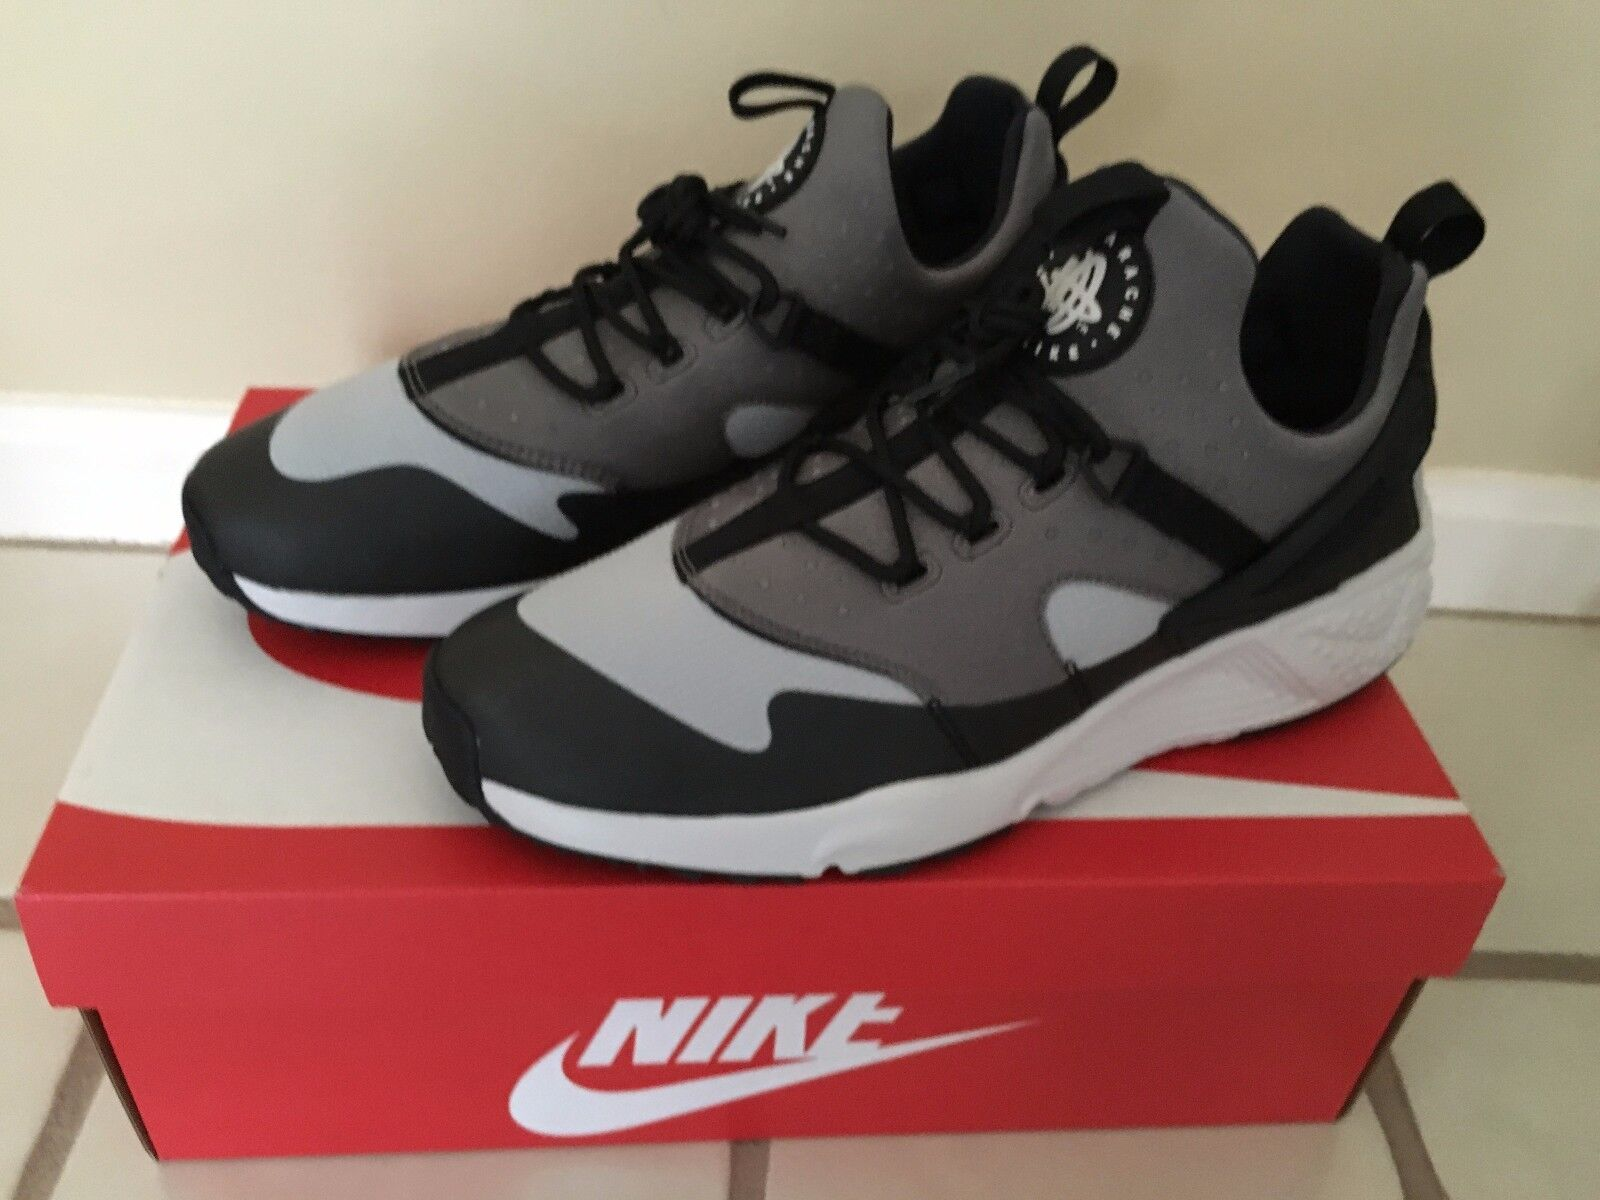 NIKE AIR HUARACHE UTILITY SNEAKERS SIZE 11 806807003 BRAND NEW BEST OFFER